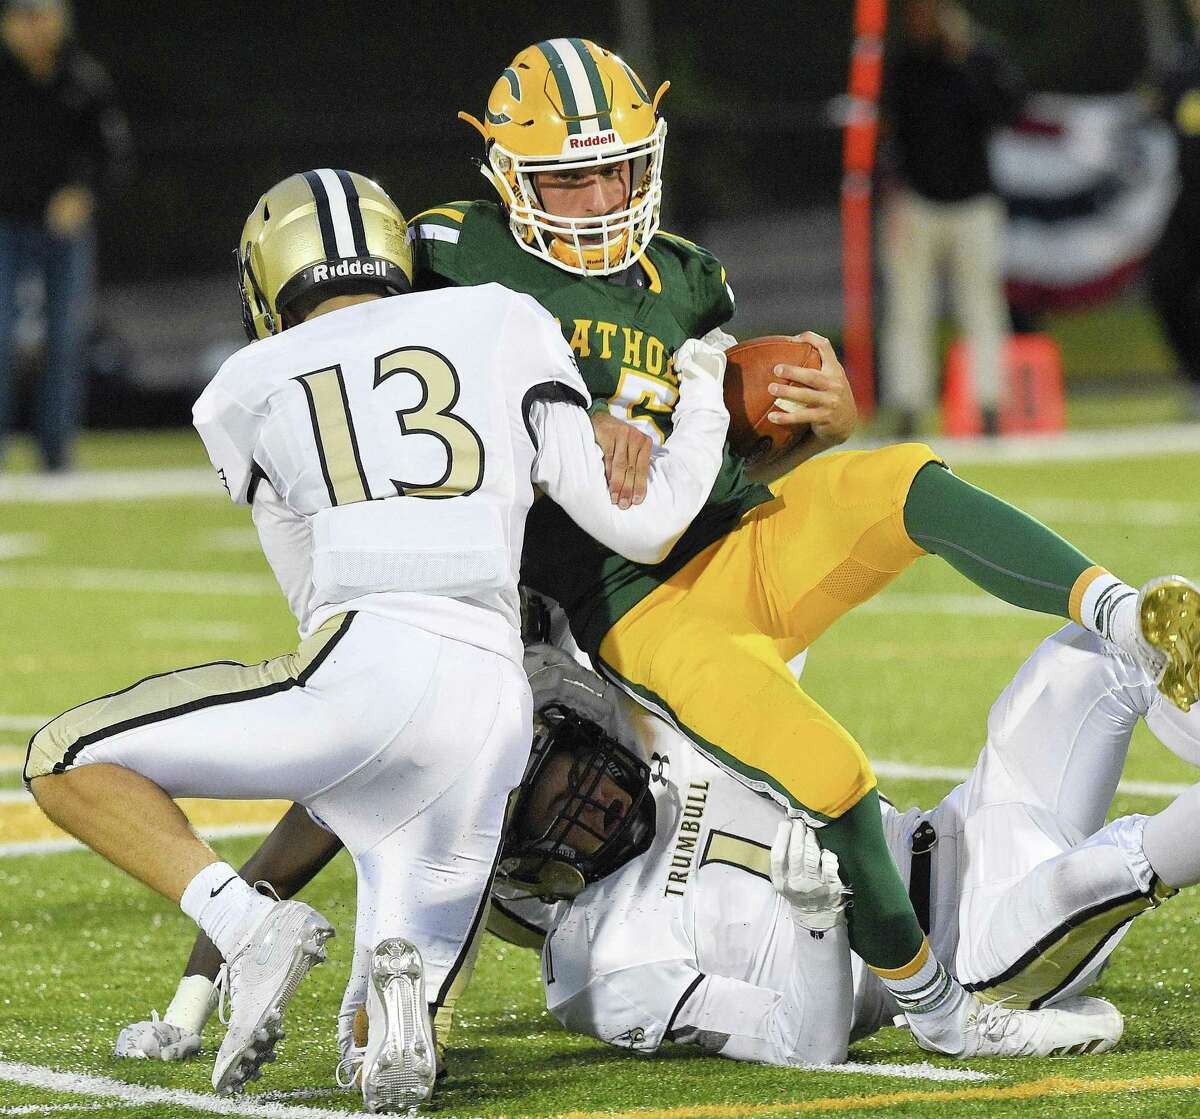 Trinty Catholic quarterback Sam Pensiero (5) is sacked by Trumbull's Nolan Shay (13) and Raymond Leonzi (1) during the second quarter Friday in Stamford.